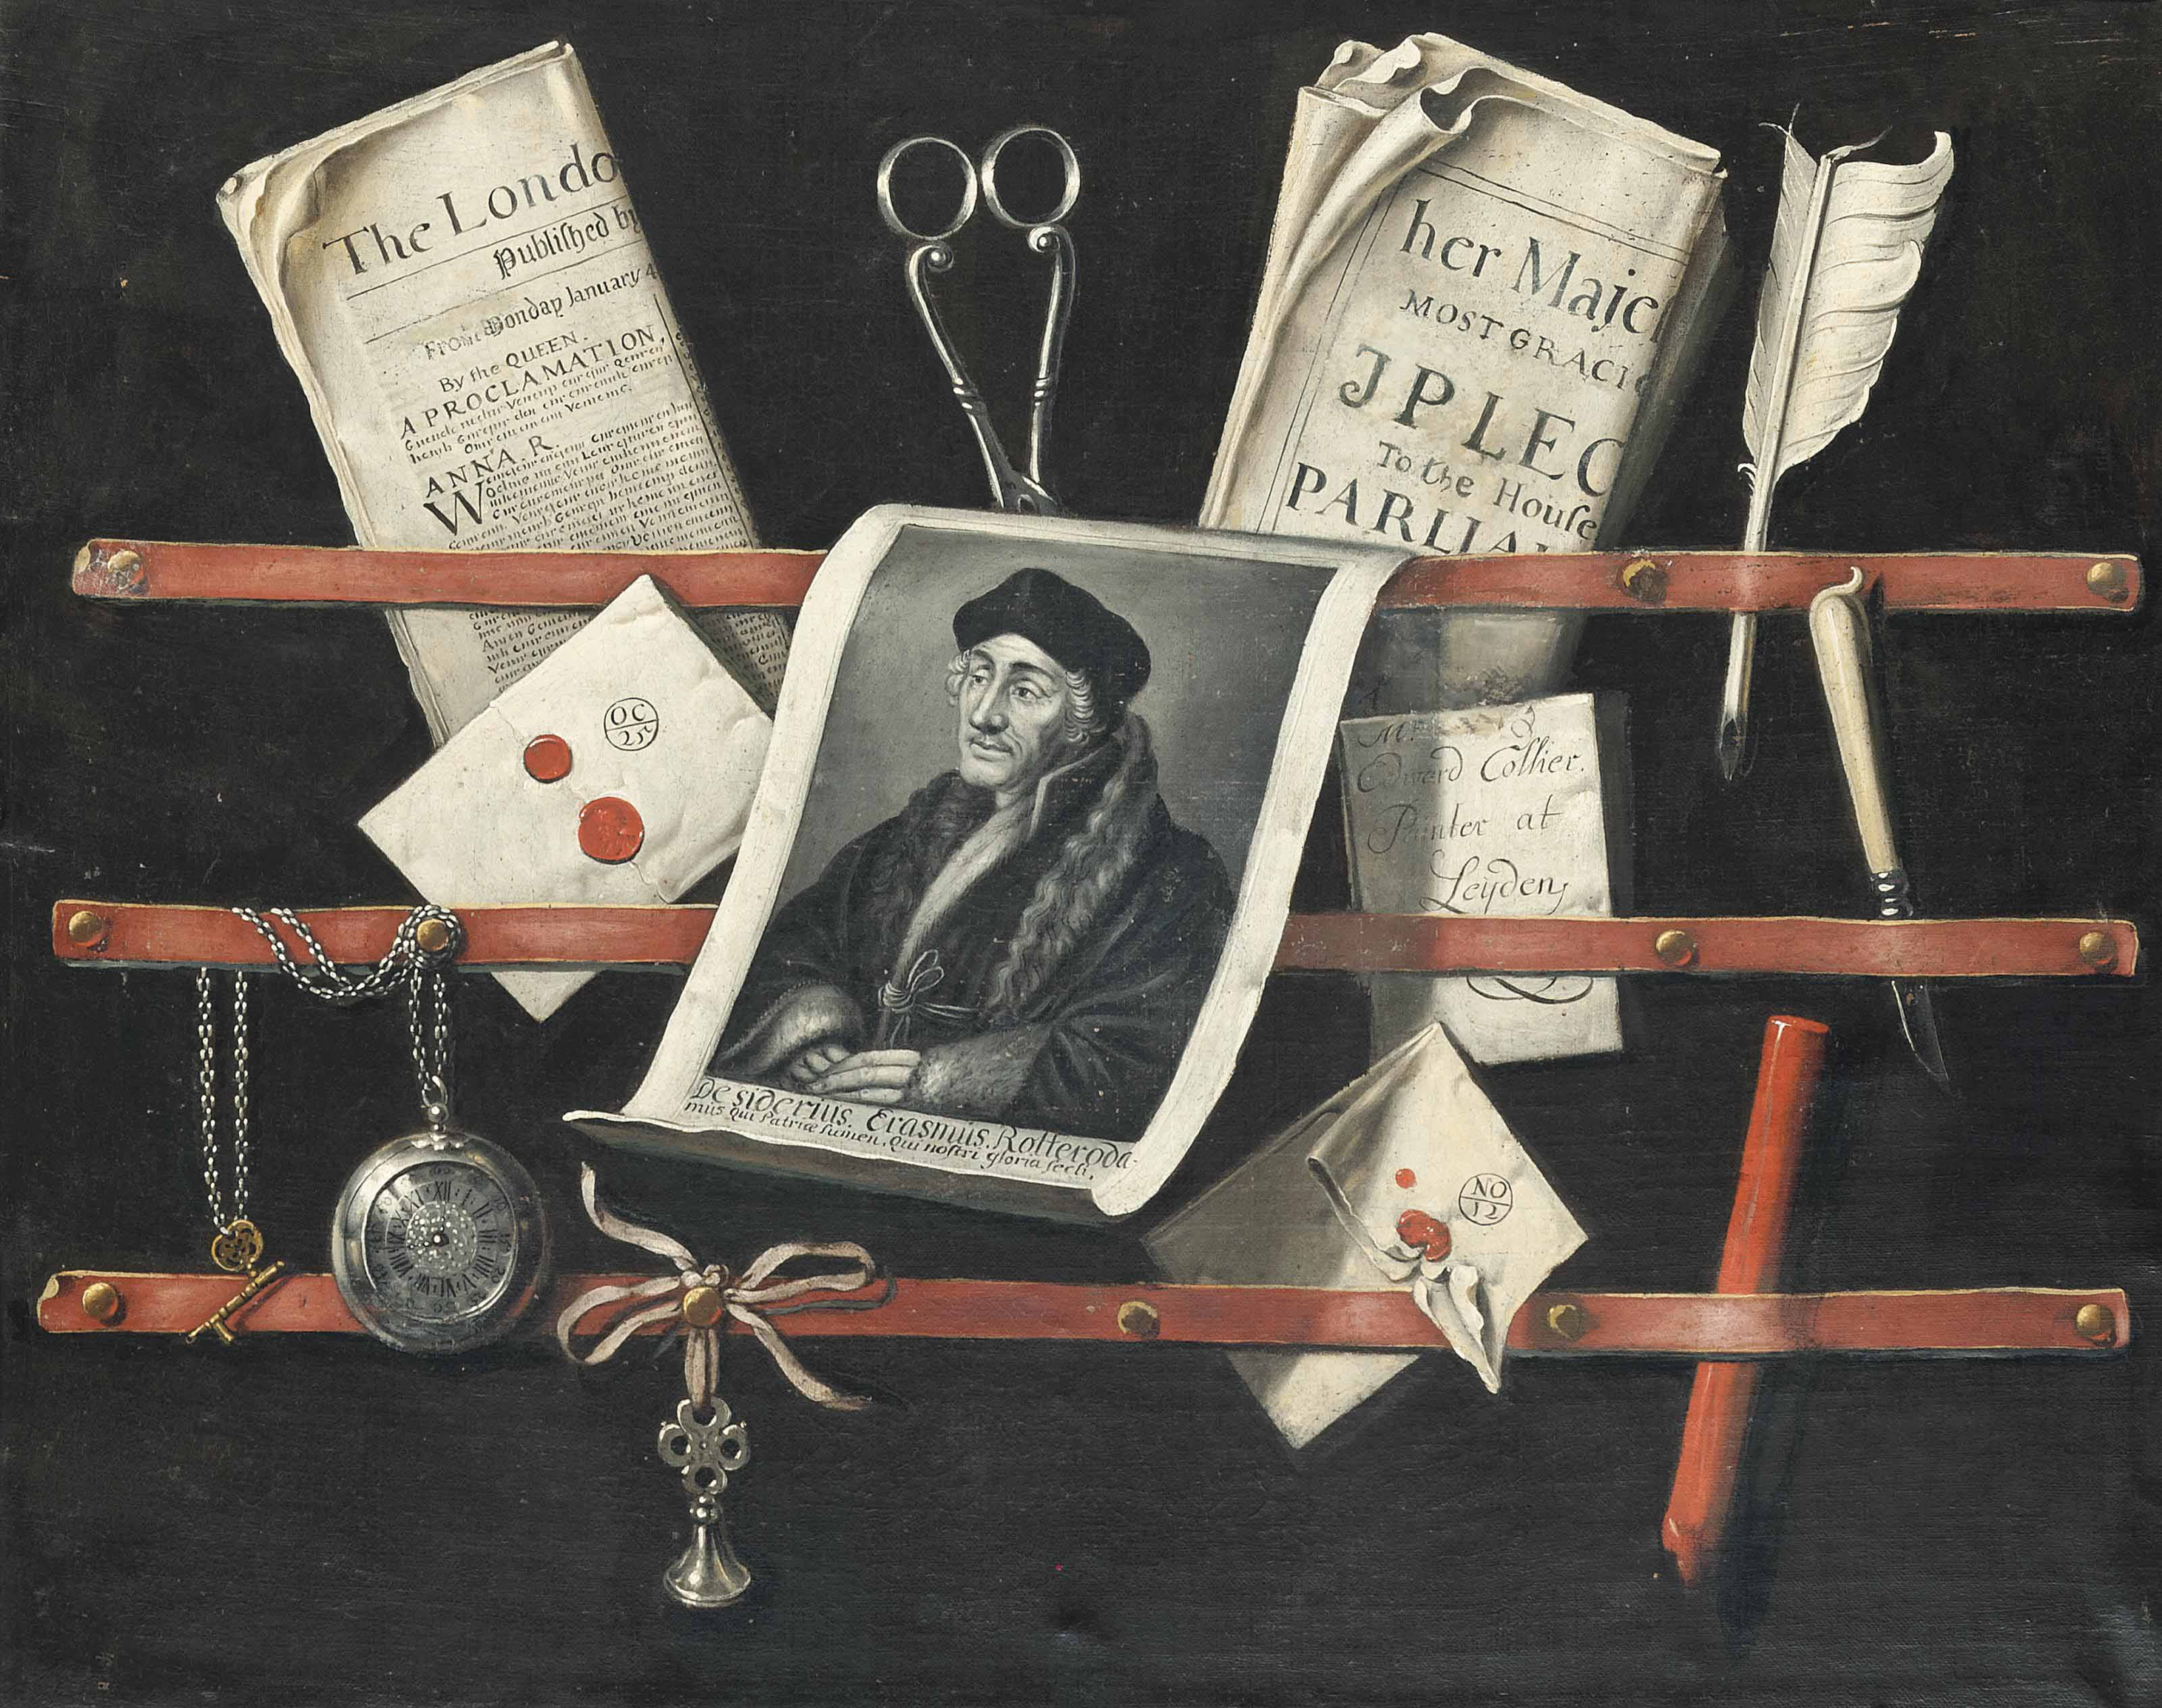 A trompe l'oeil of letters, an engraving after a portrait of Erasmus of Rotterdam (1466-1536), a quill, a pocket-watch, a stick of red wax and other objects